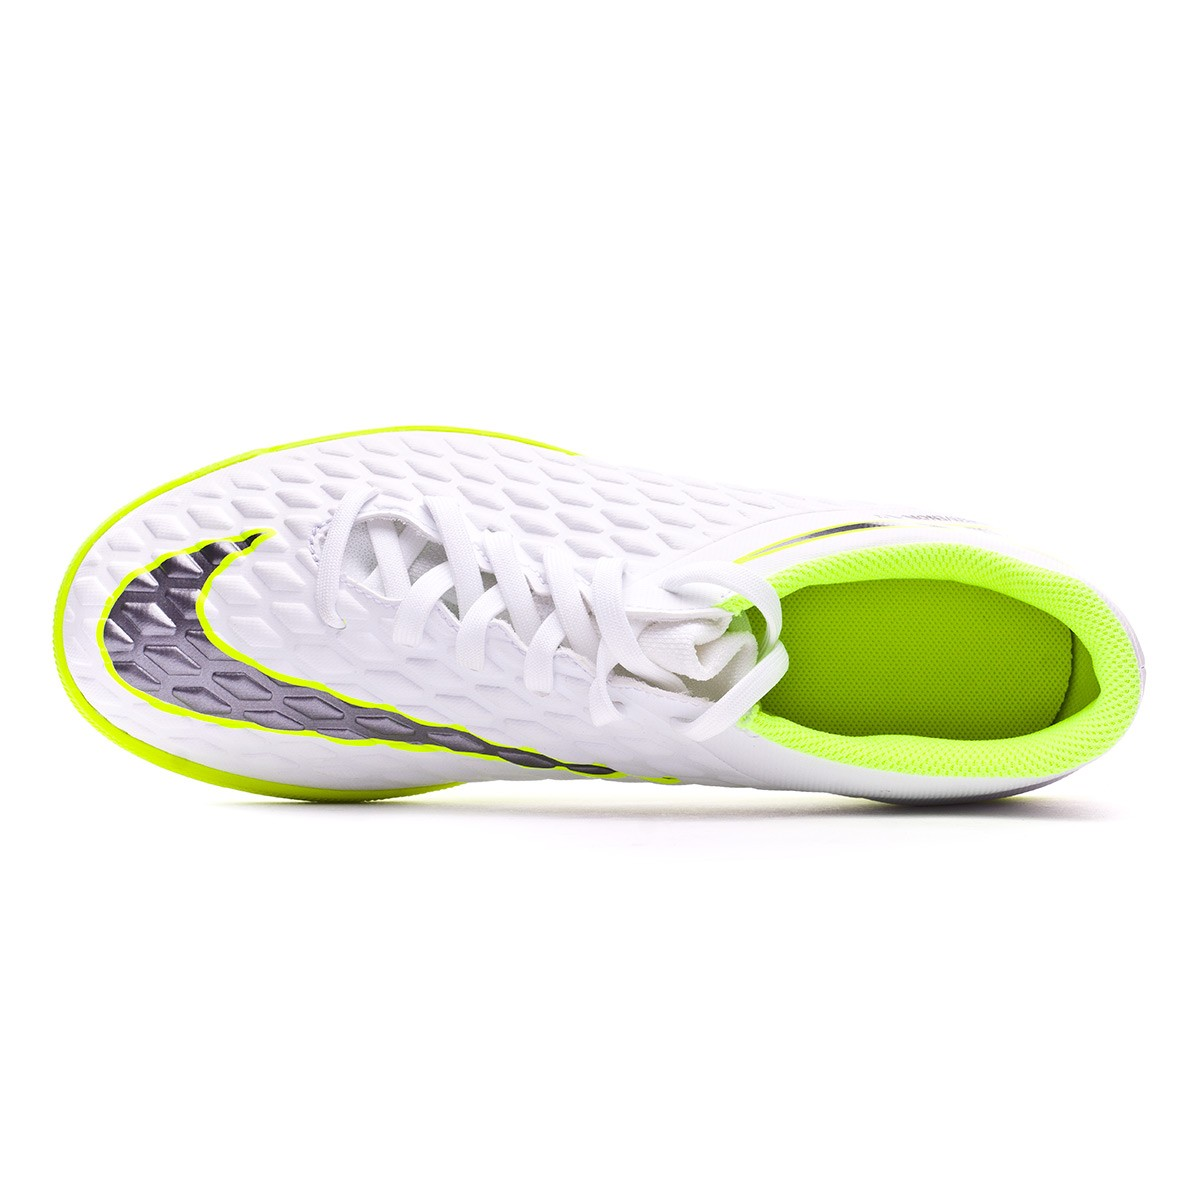 timeless design 38423 8874a Futsal Boot Nike Hypervenom PhantomX III Club IC White-Metallic cool  grey-Volt-Metallic cool g - Football store Fútbol Emotion